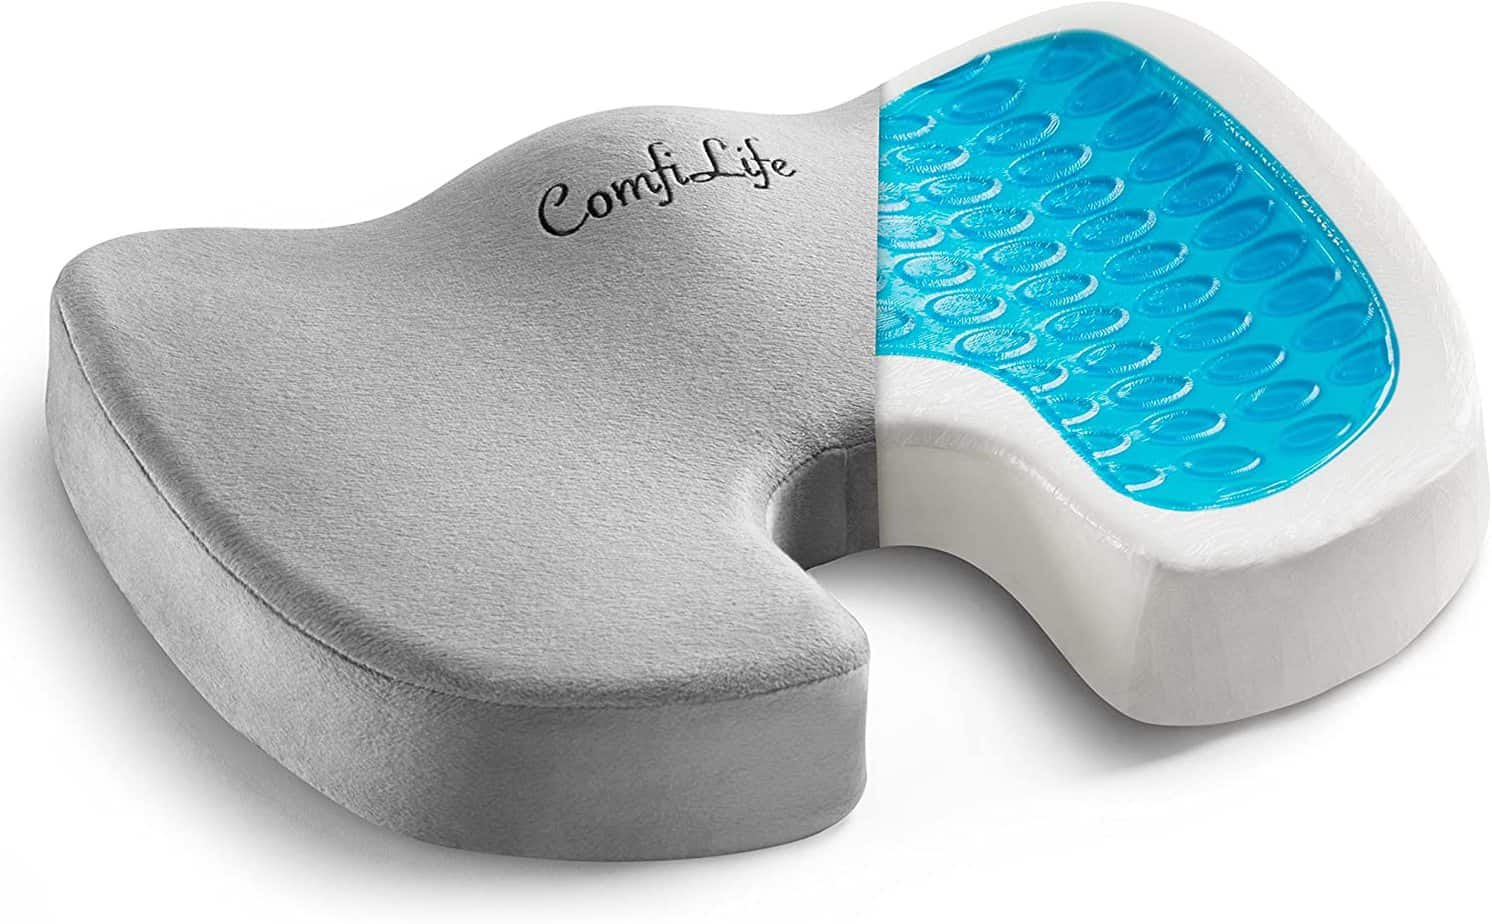 3.	ComfiLife Gel Enhanced Seat Cushion